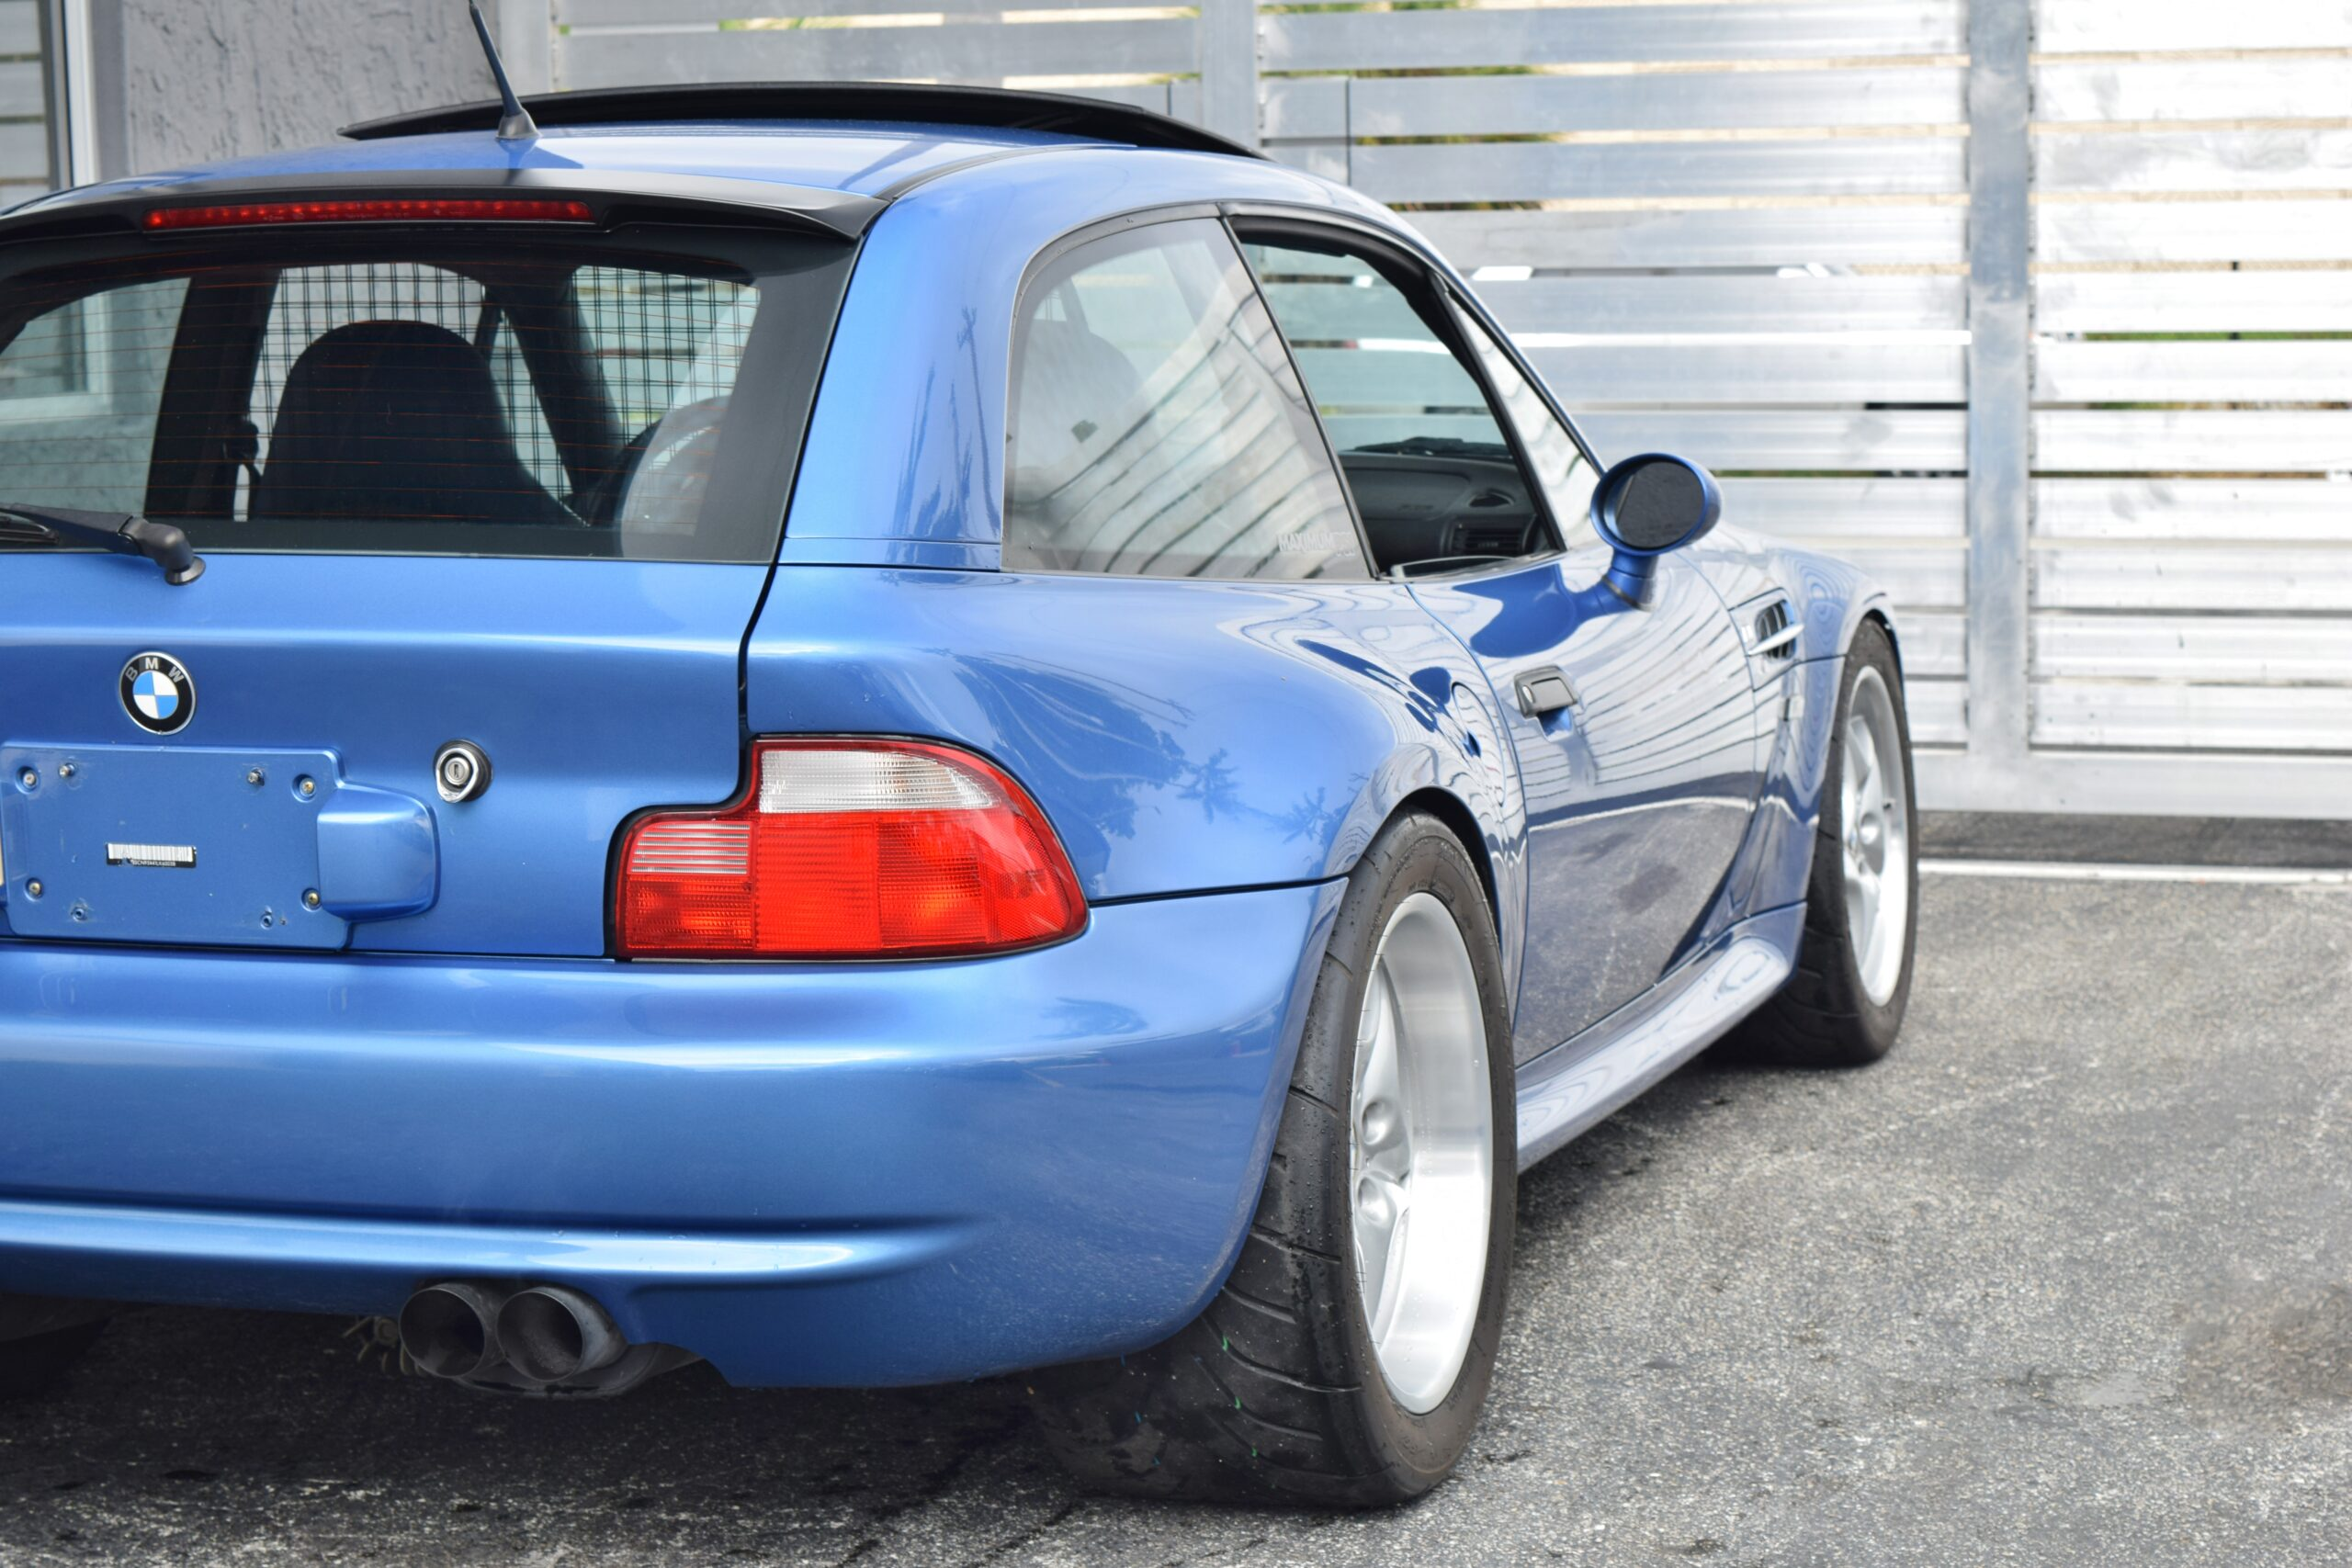 2001 BMW M Roadster & Coupe Z3M COUPE 1 Owner S54 Turbo 700whp -Original Window Sticker- Full Service History from NEW